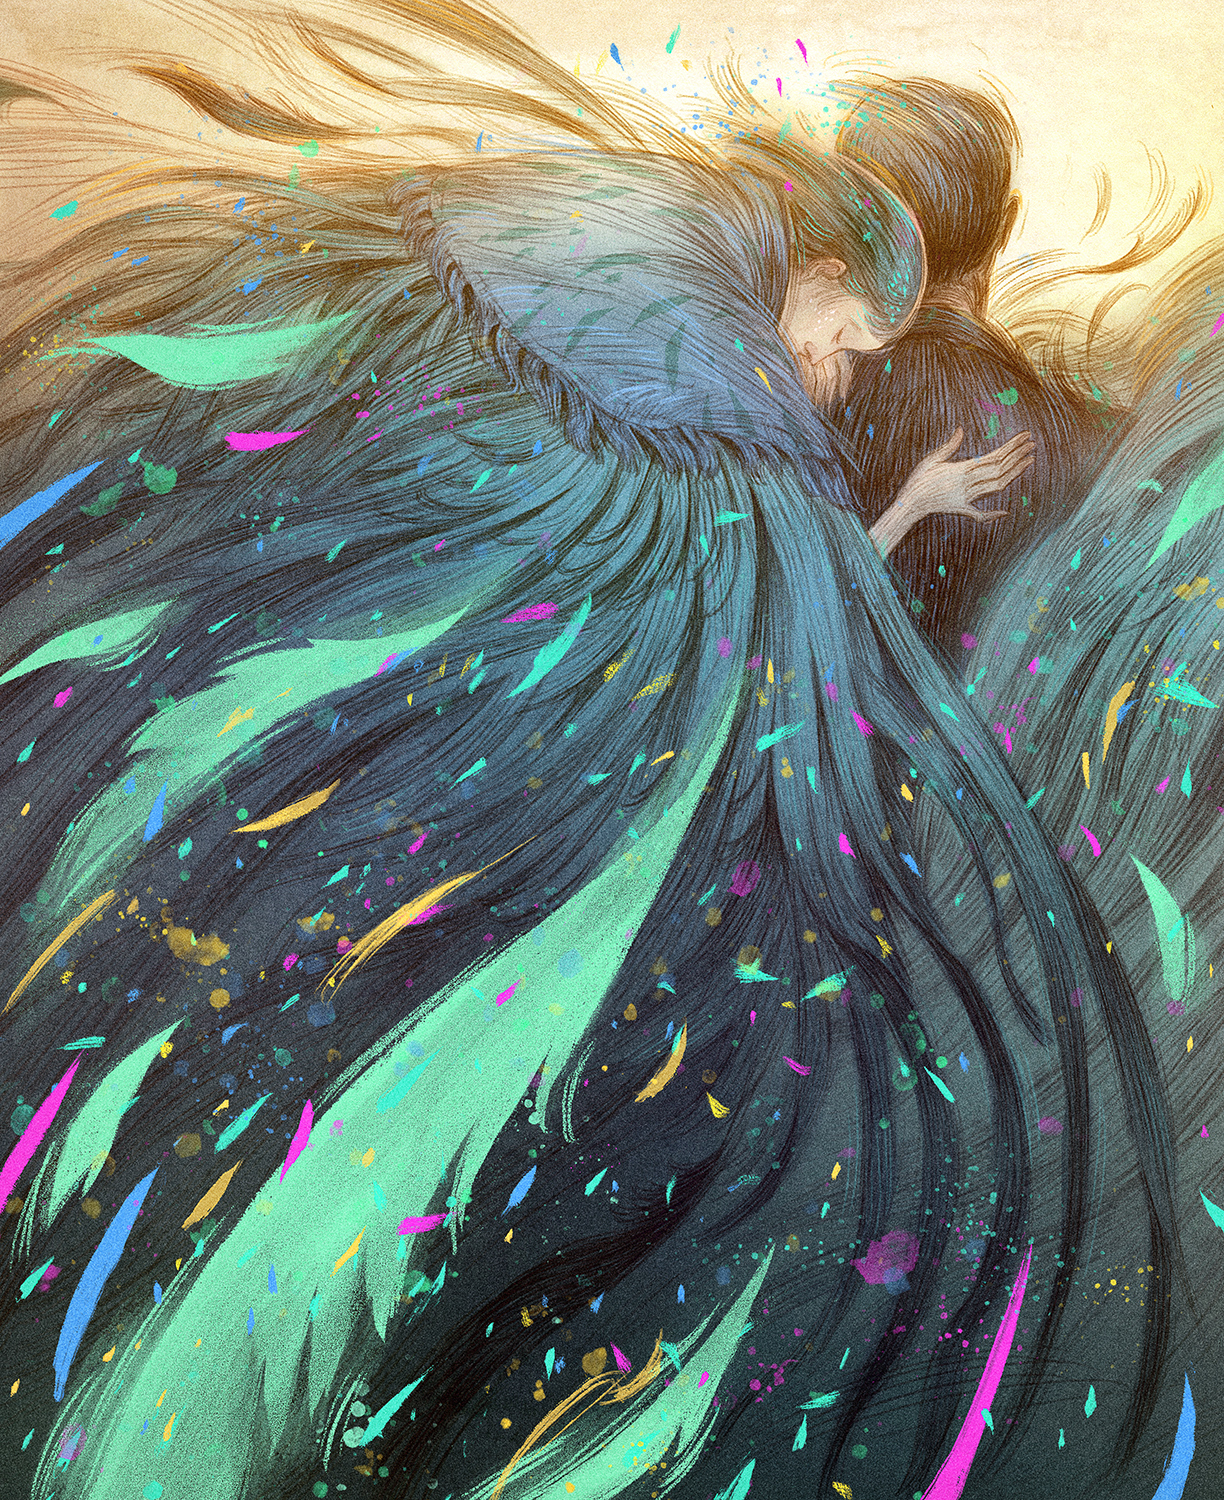 Feathers Artwork by Rovina Cai